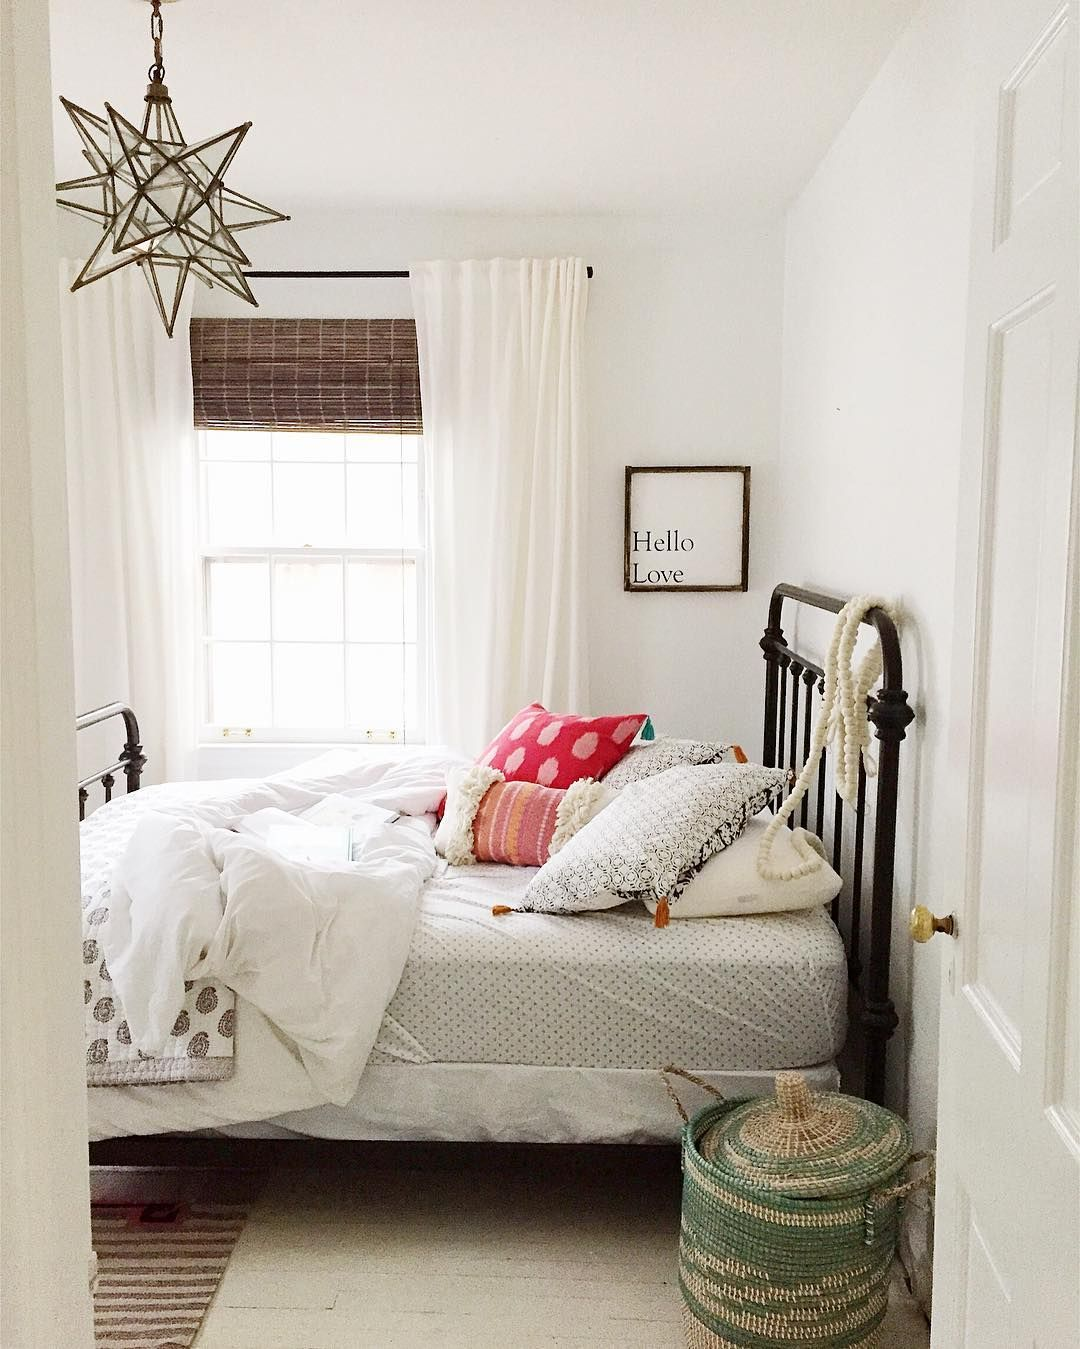 Bedroom Blinds Uk Vintage Paris Bedroom Decor Tranquil Bedroom Colors Bedroom Designs For Teenagers: Pin By Cindy Crawford On MY FIXER UPPER